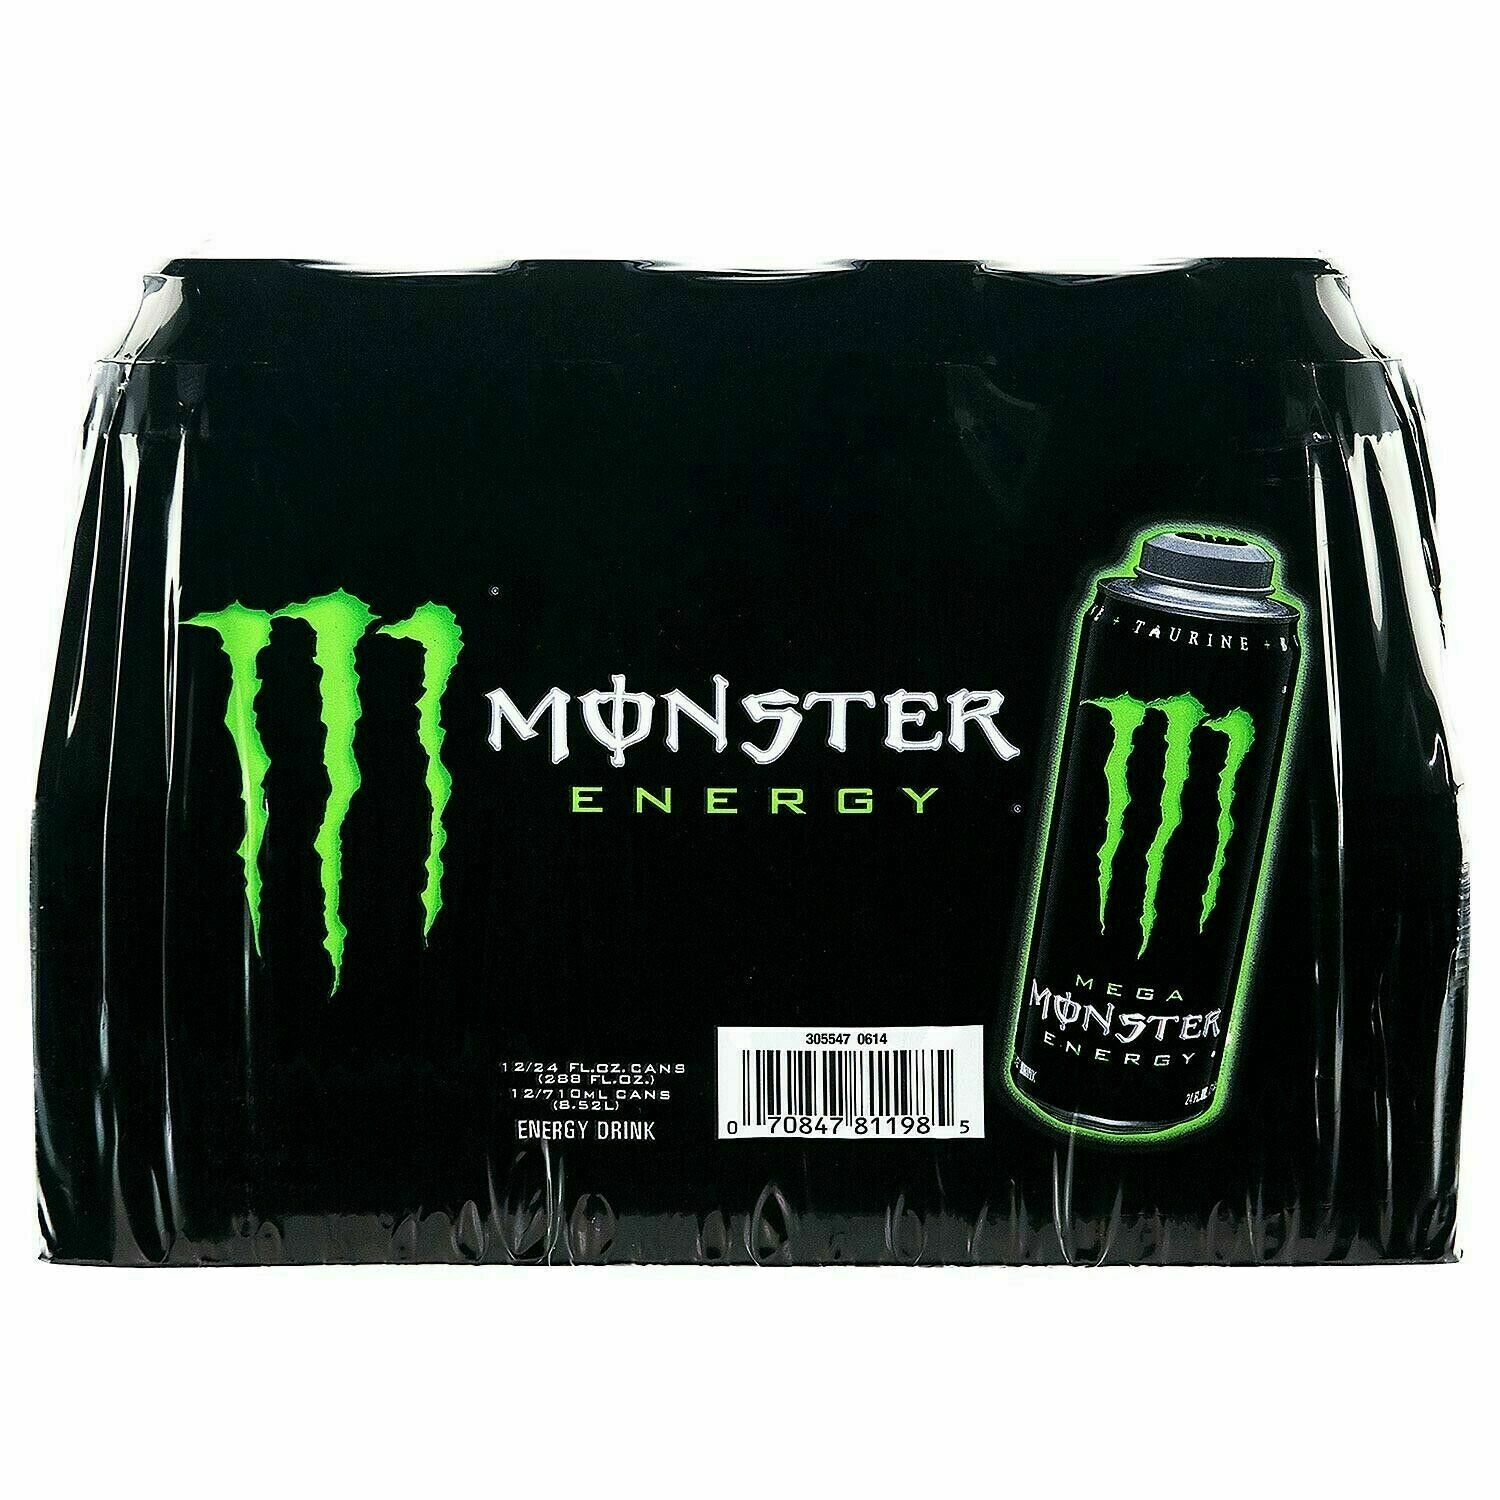 * Monster Energy Drink Mega 12-24 Ounces Cans